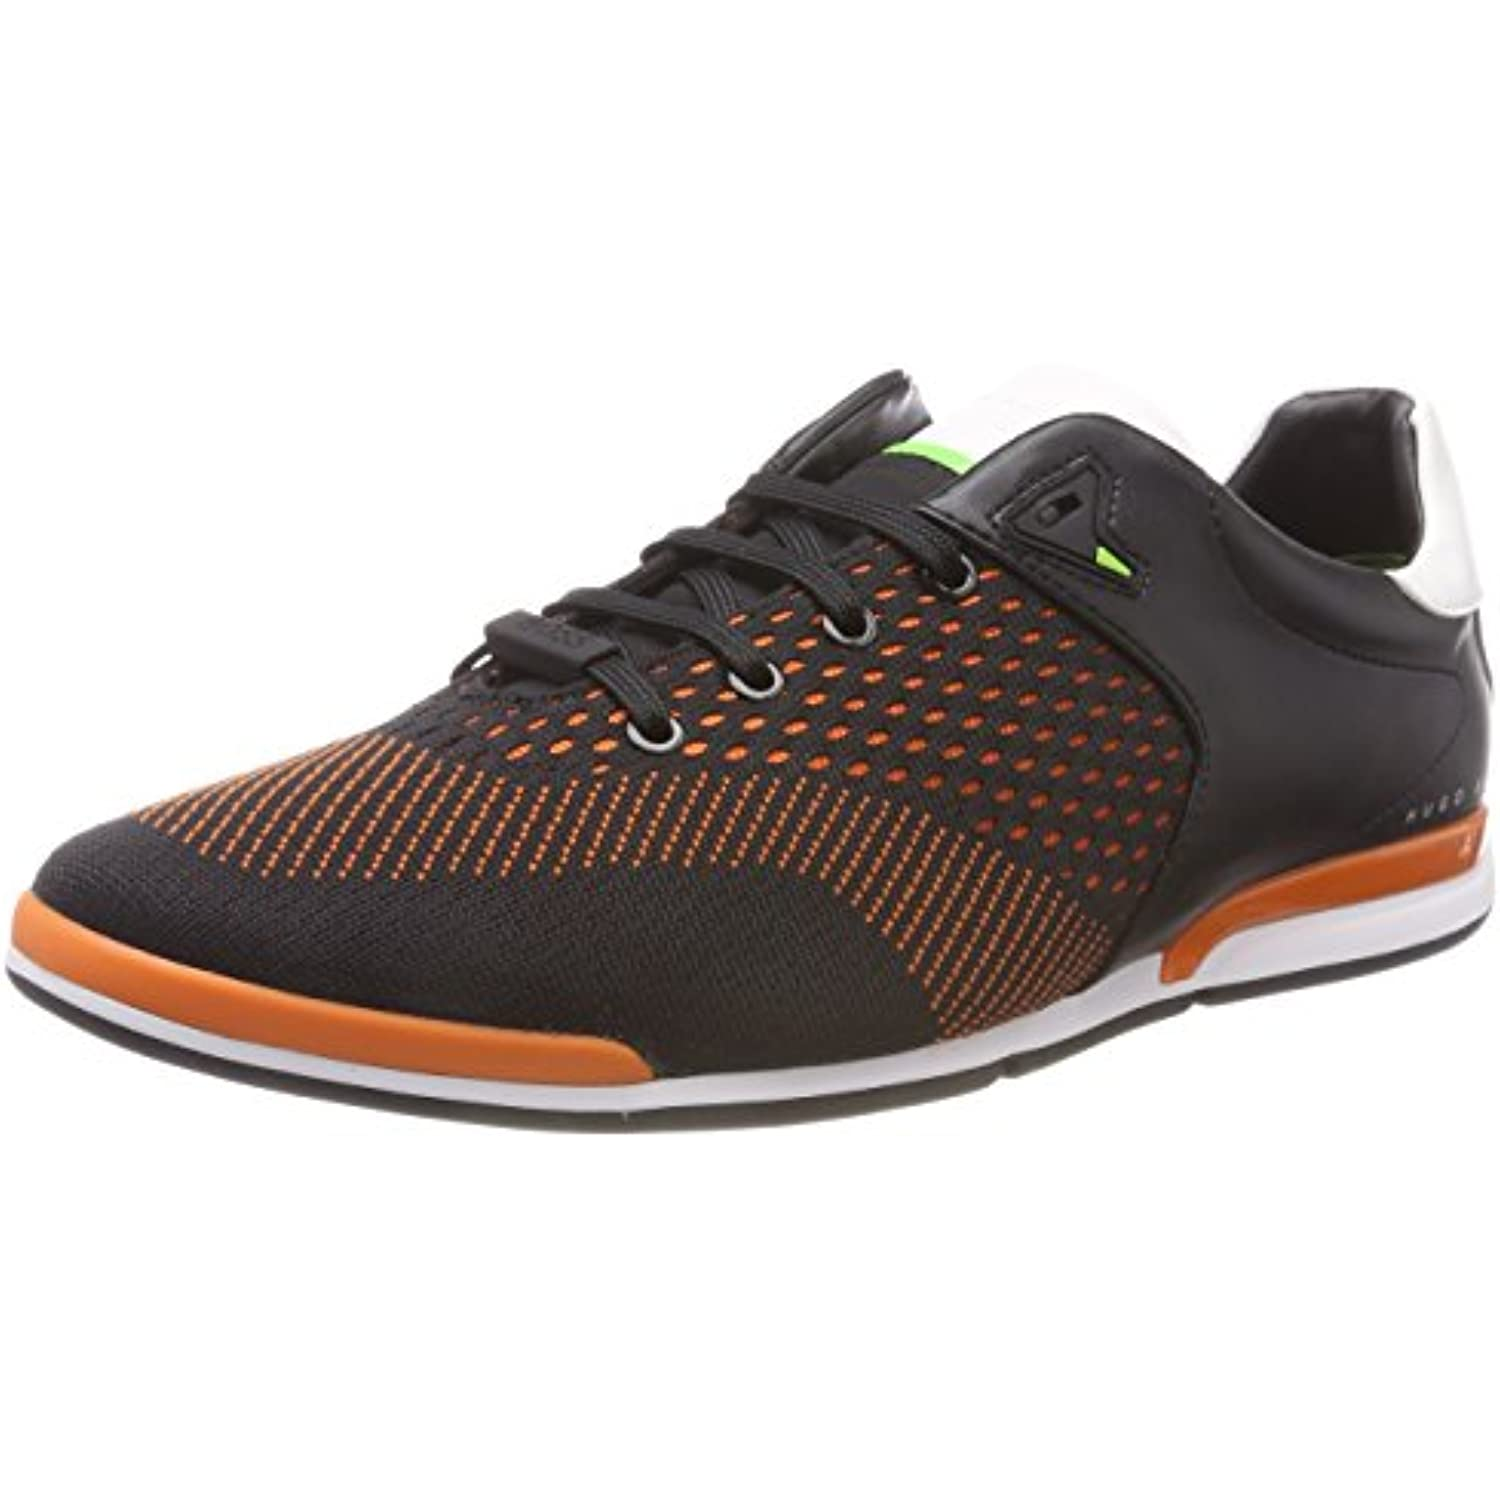 BOSS Saturn_Lowp_act, Sneakers B07C56X6SK Basses Homme - B07C56X6SK Sneakers - 5a99bc